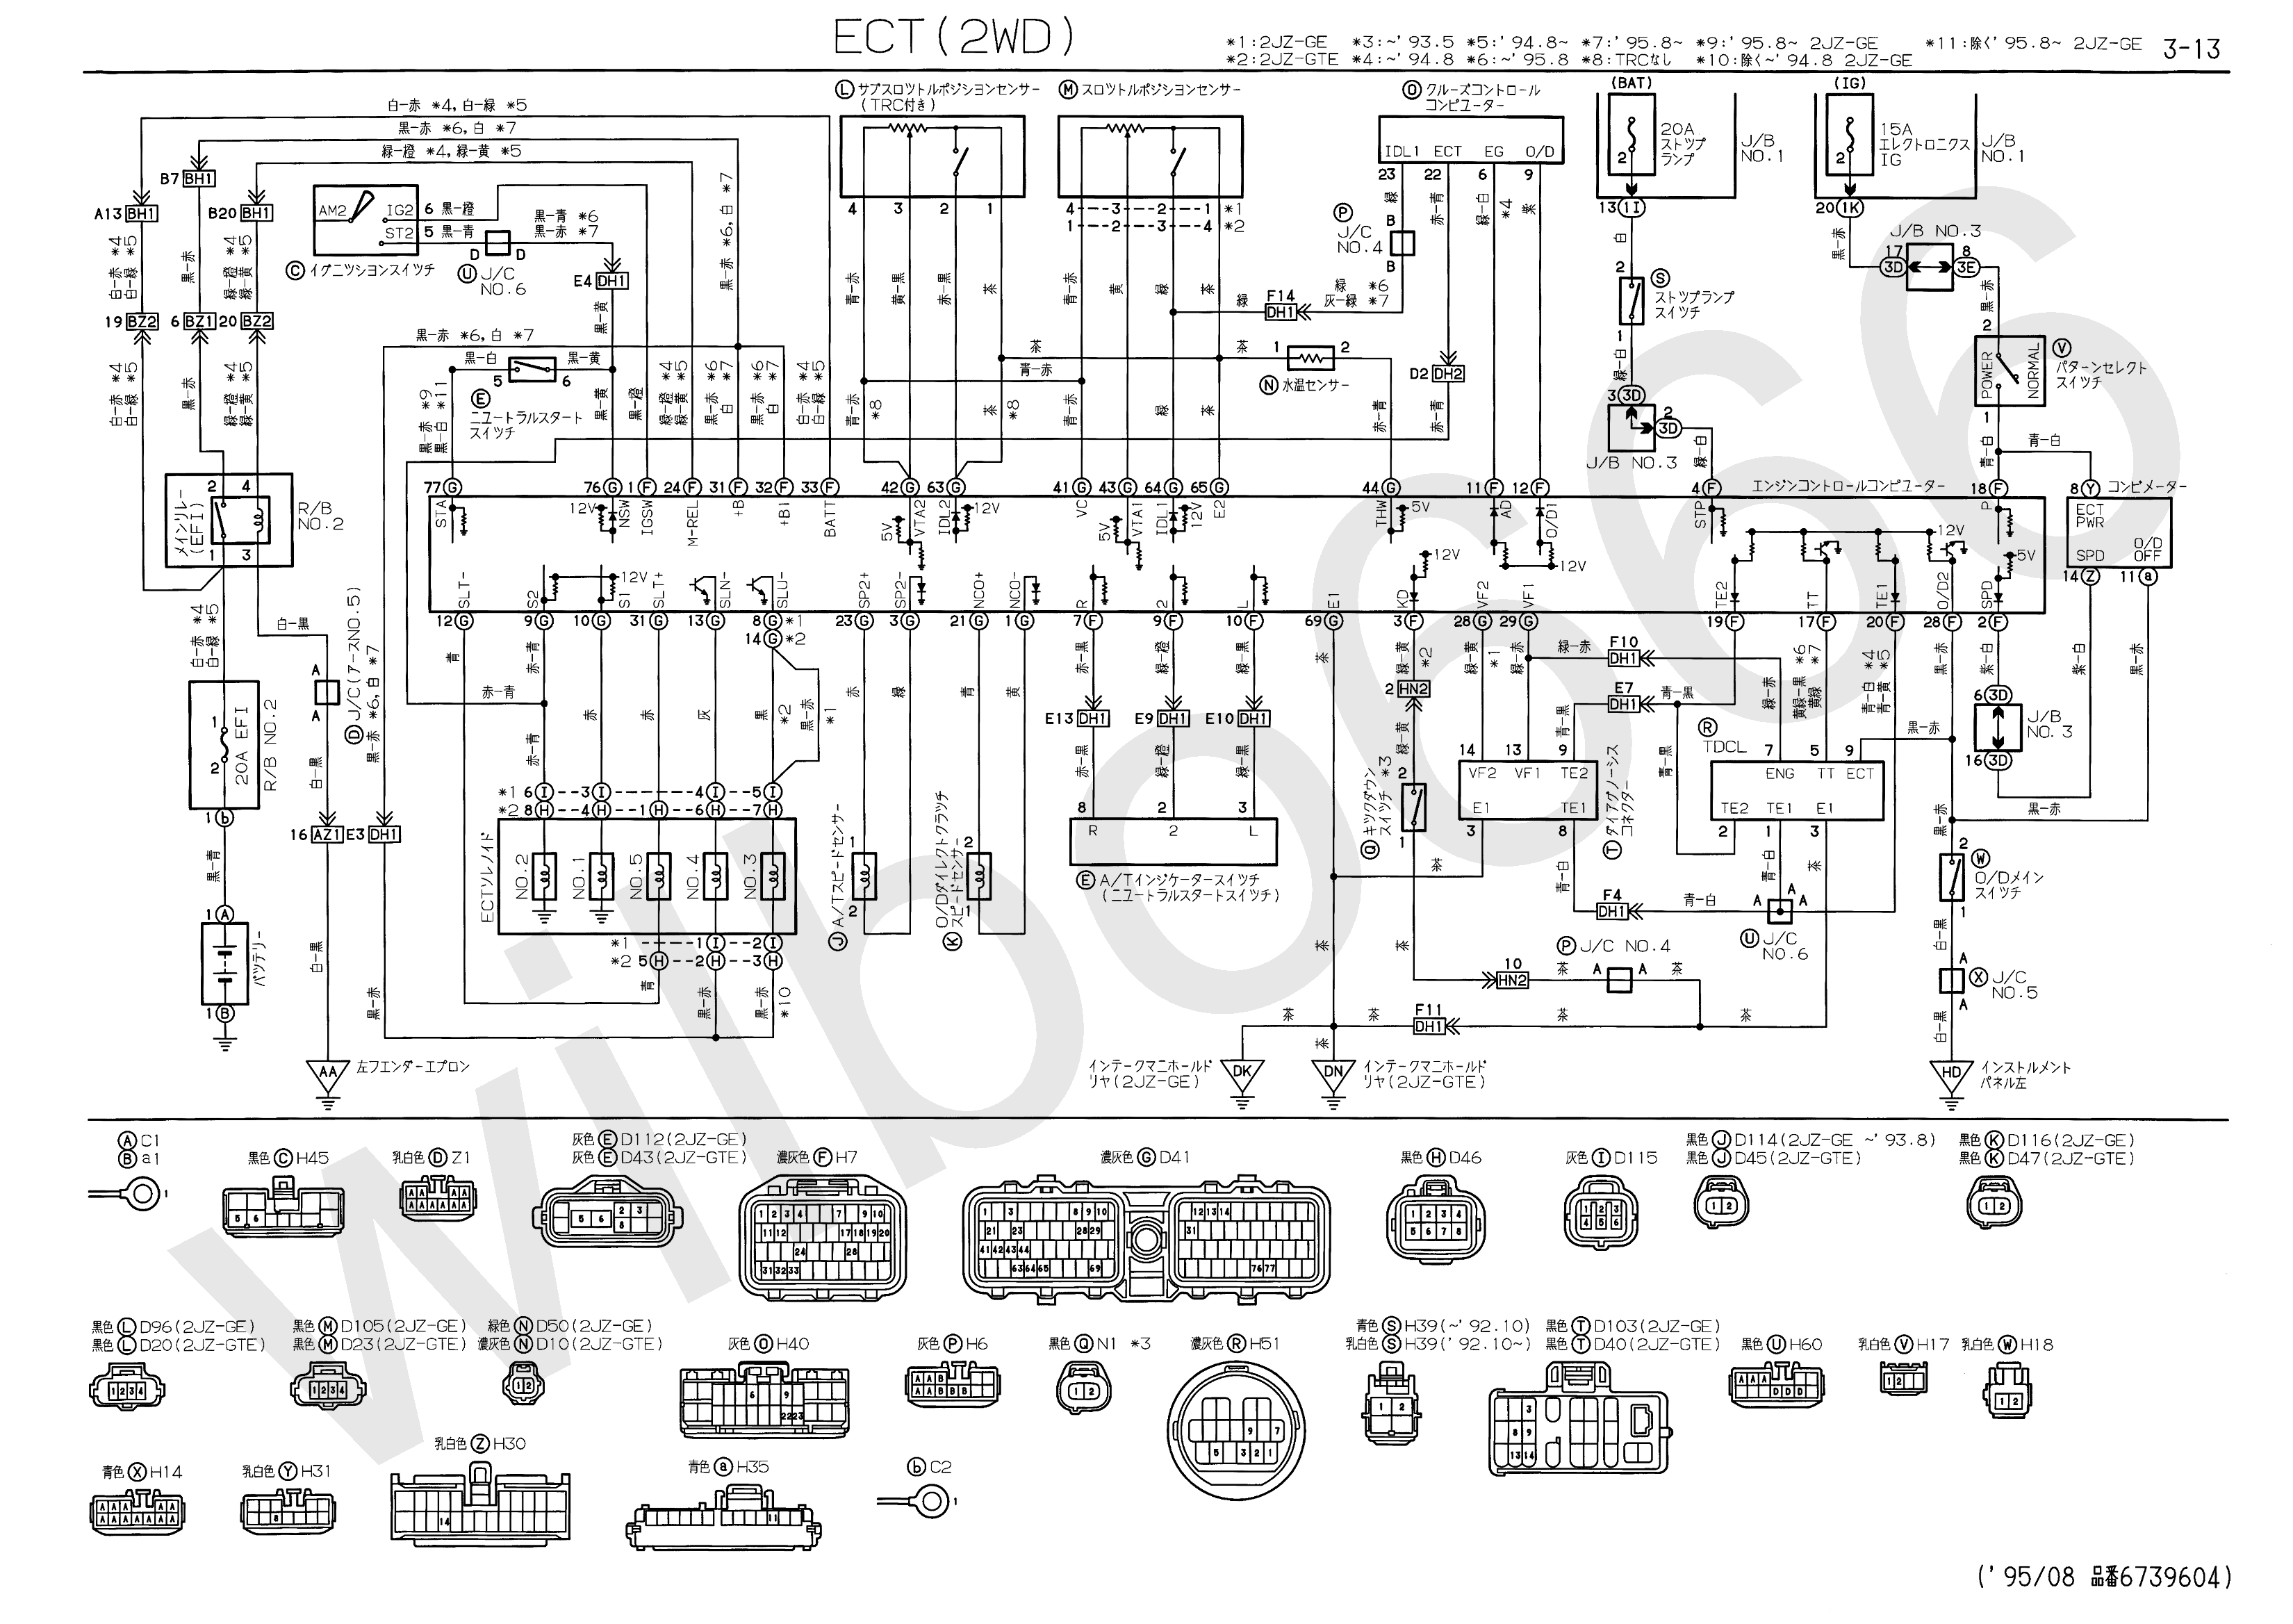 Allison Transmission Ecu Wiring Diagram